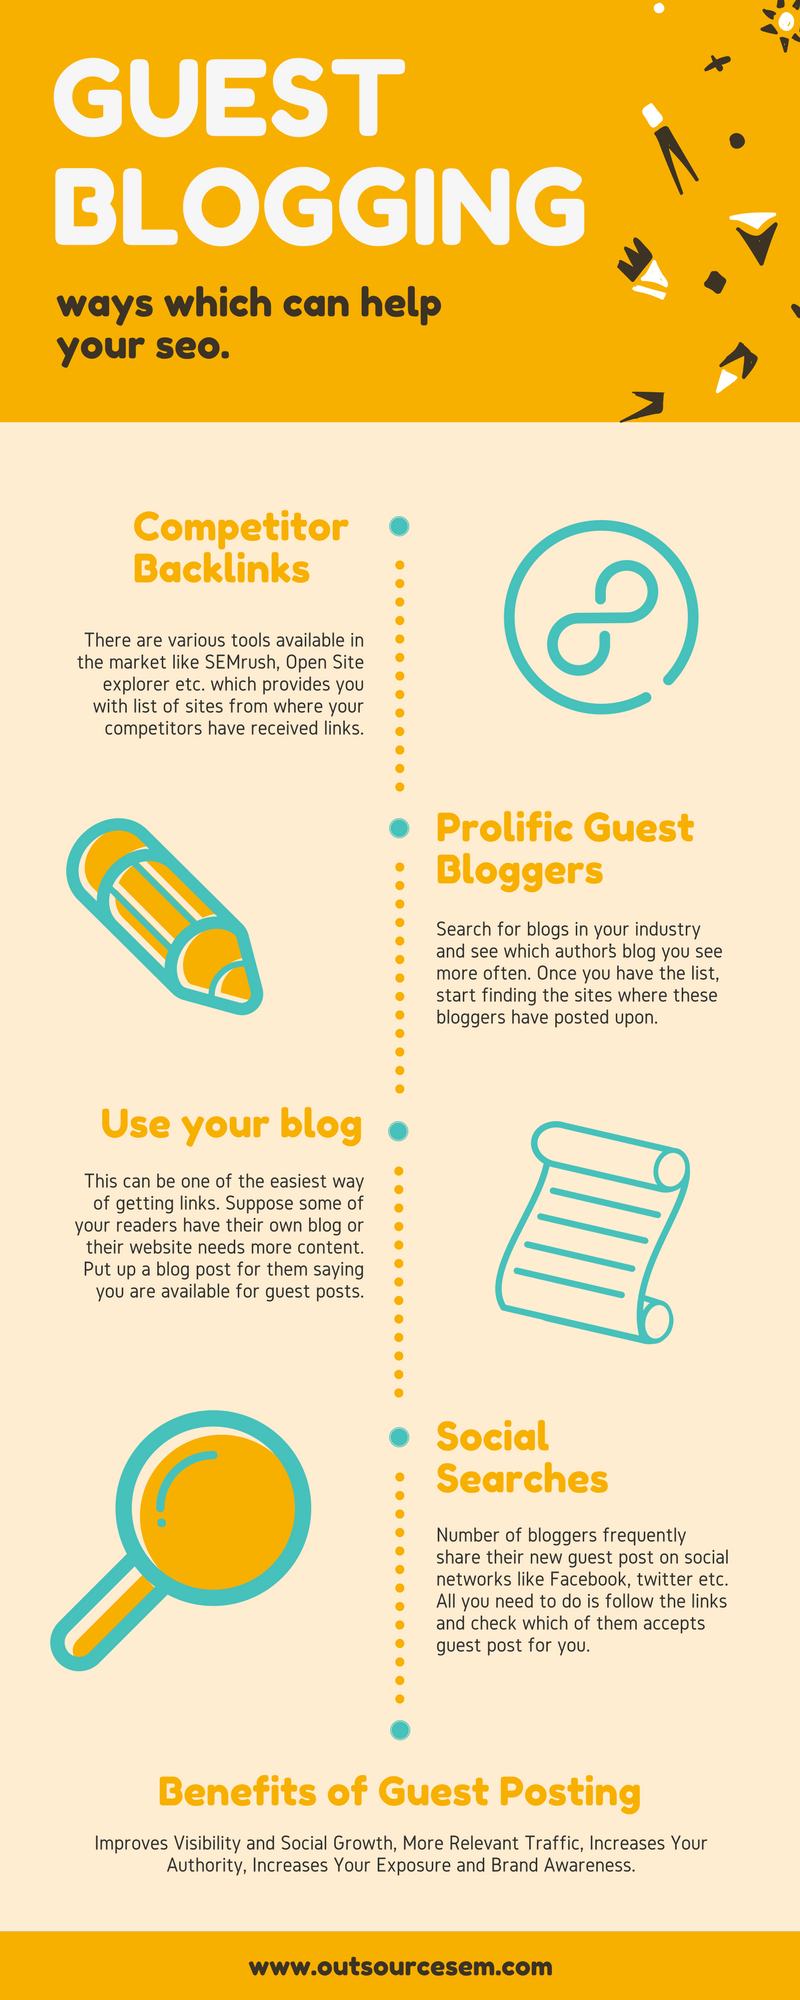 SEO Benefits of Guest Blogging | Outsource SEM